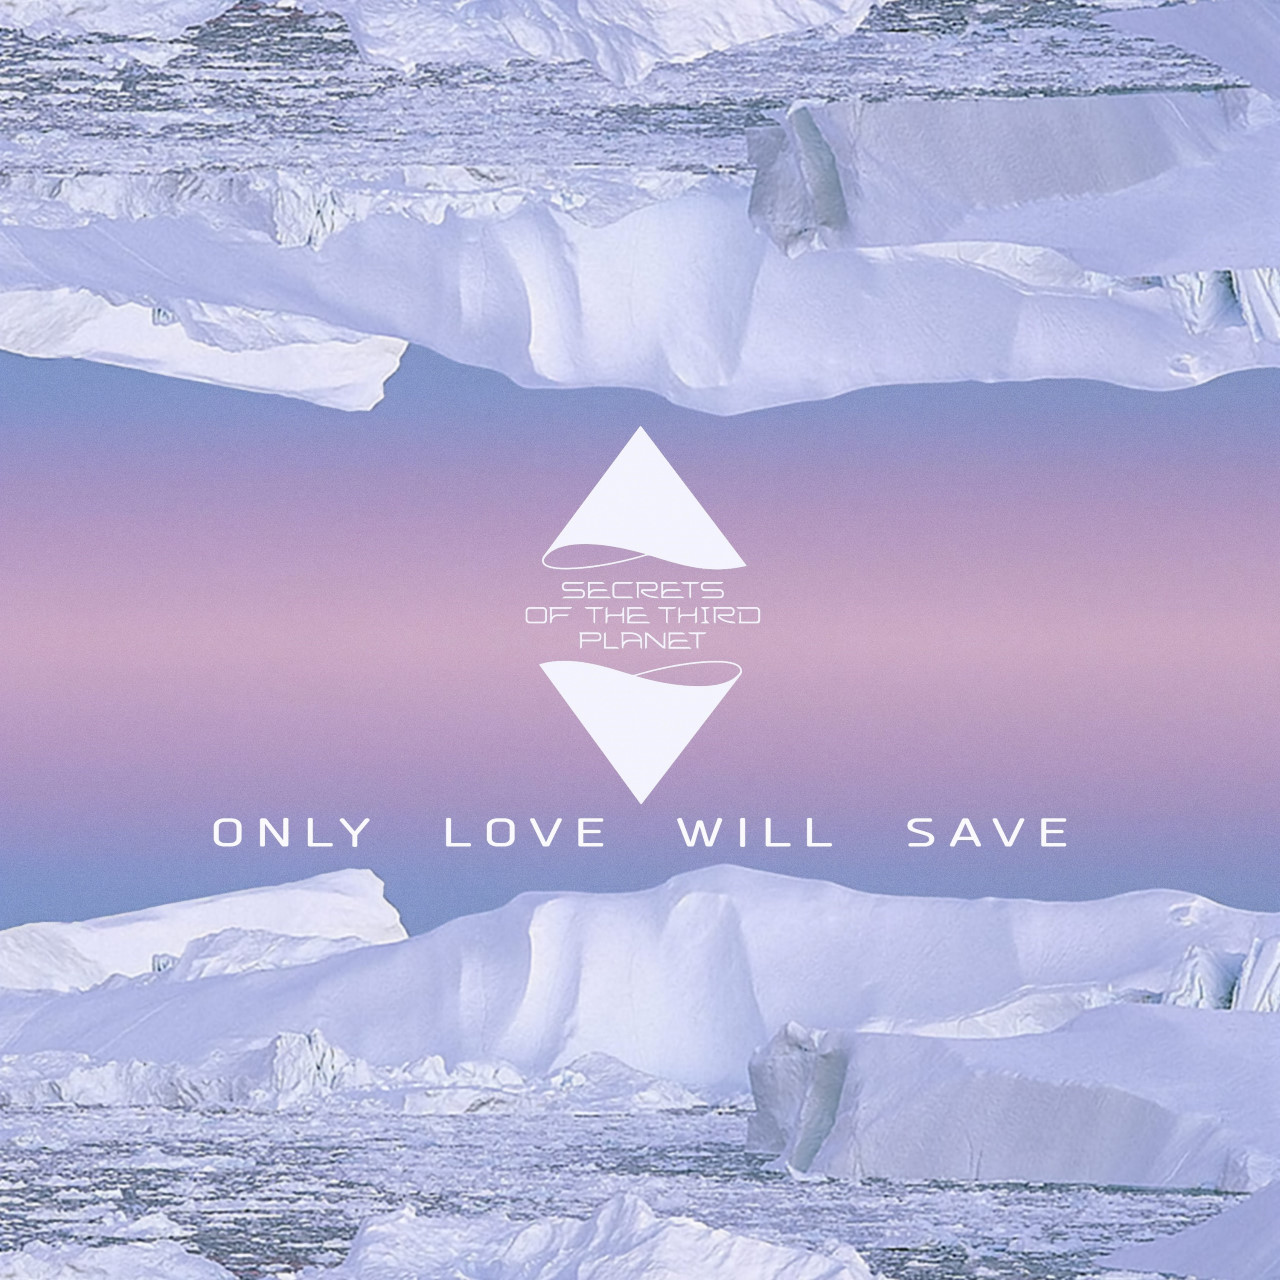 Only love will save EP